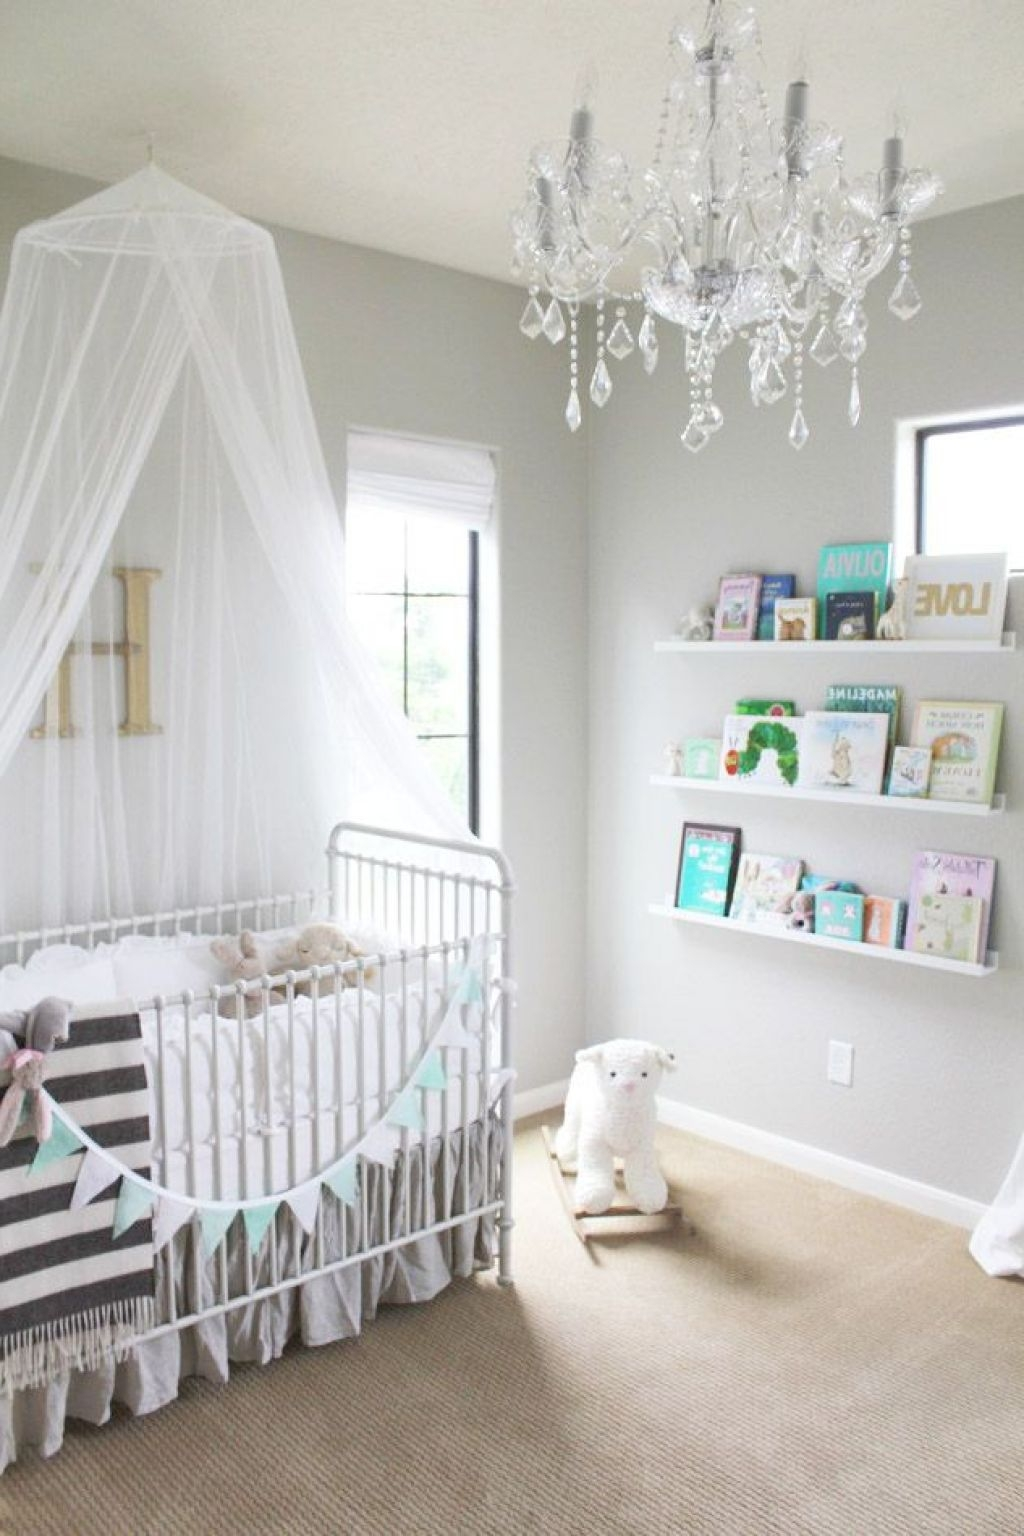 25 ideas of mini chandeliers for nursery chandelier ideas chandelier glamorous small chandelier for nursery wonderful intended for mini chandeliers for nursery image 12 aloadofball Gallery